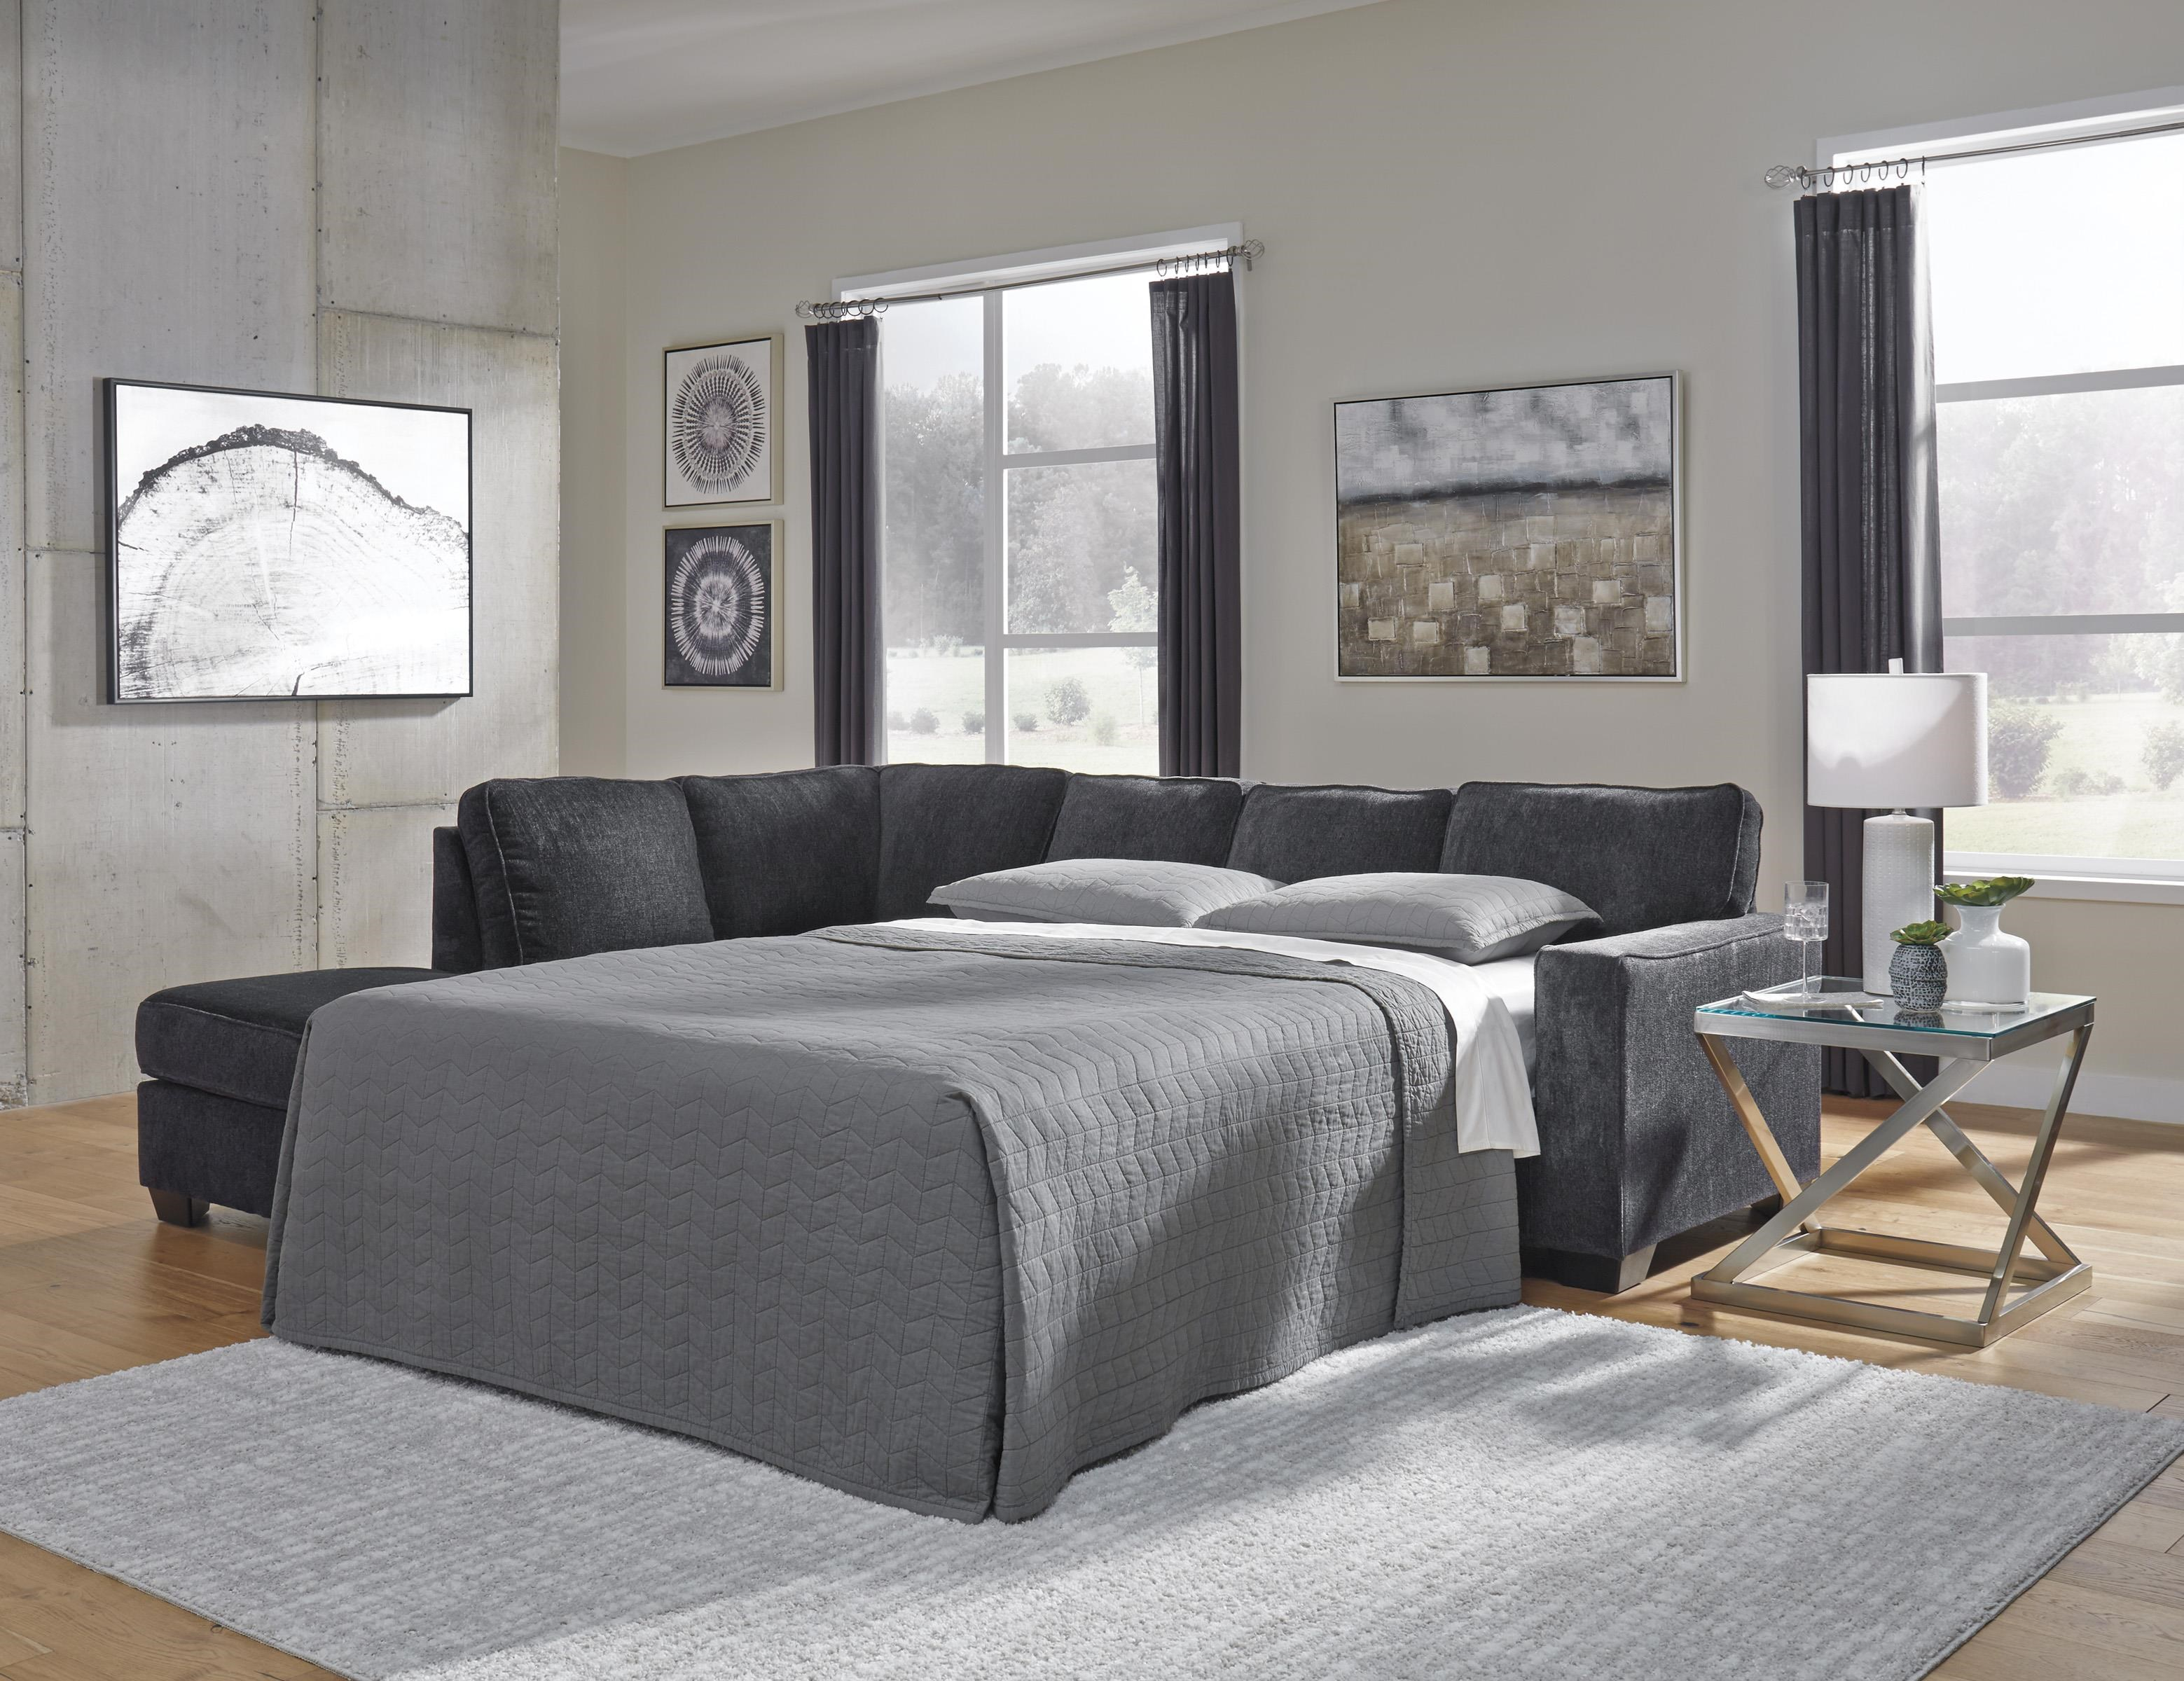 2 PC Sleeper Sectional and Ottoman Set